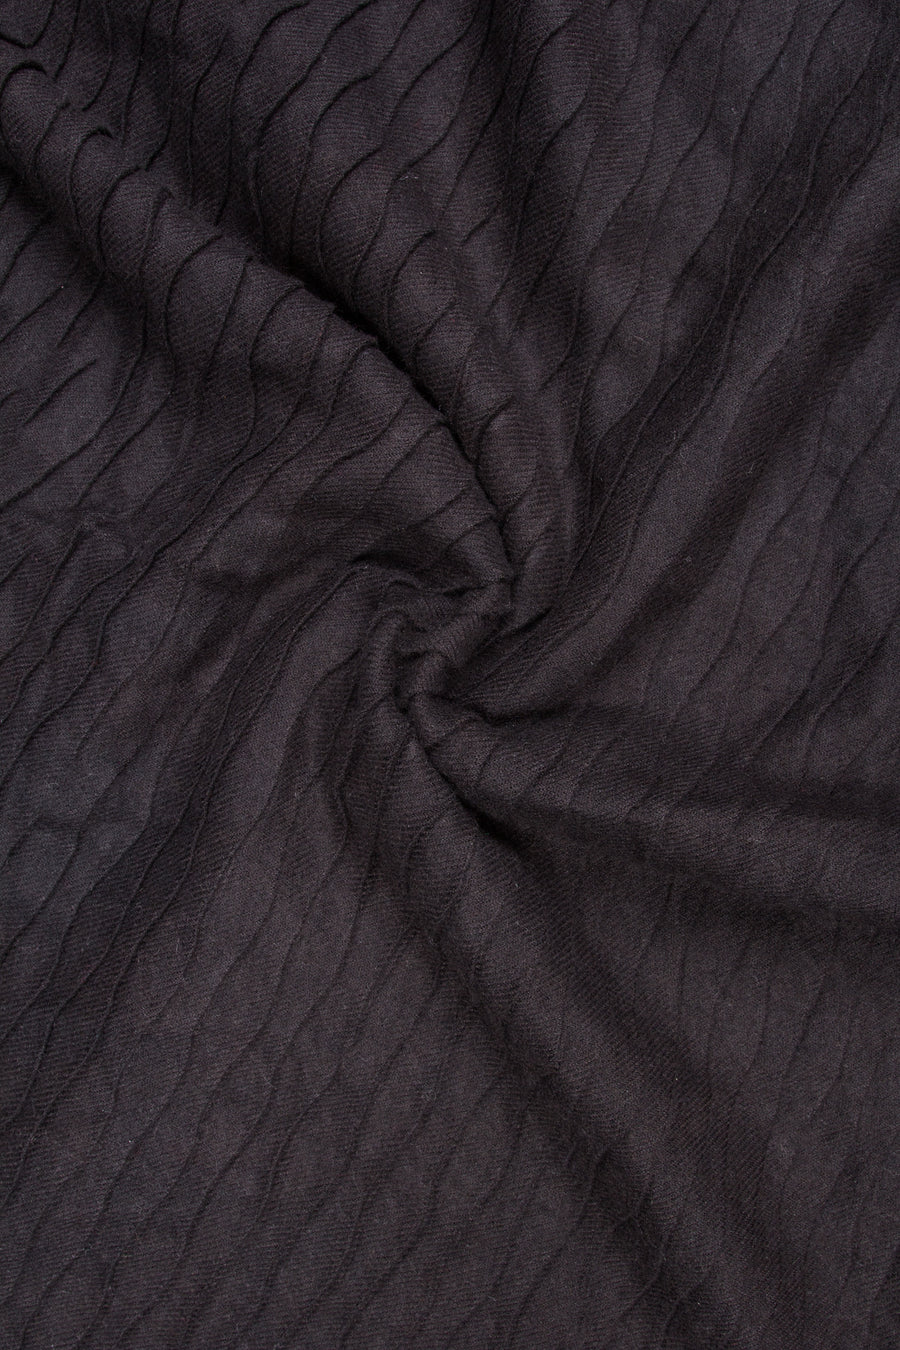 Rayon Pleat WrapJet Black Hijab